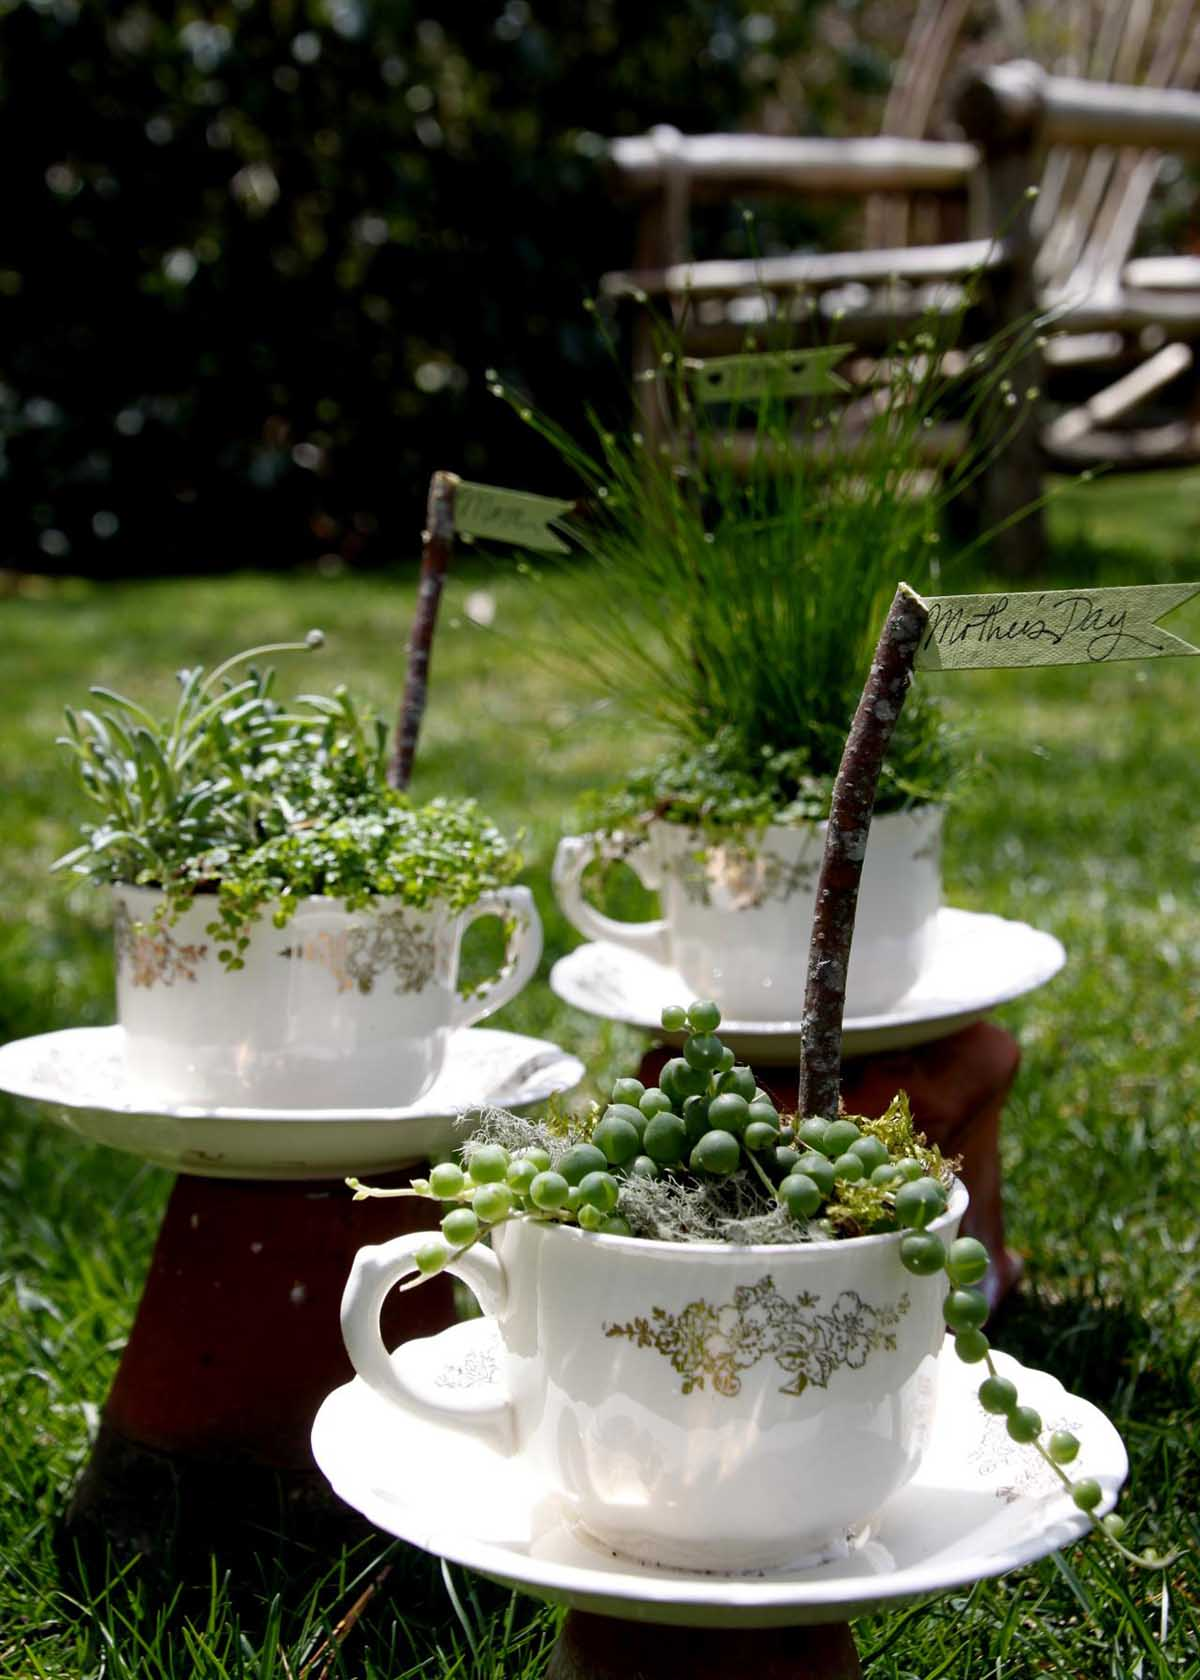 Plant Assortment Gives Variety to Matching Teacups